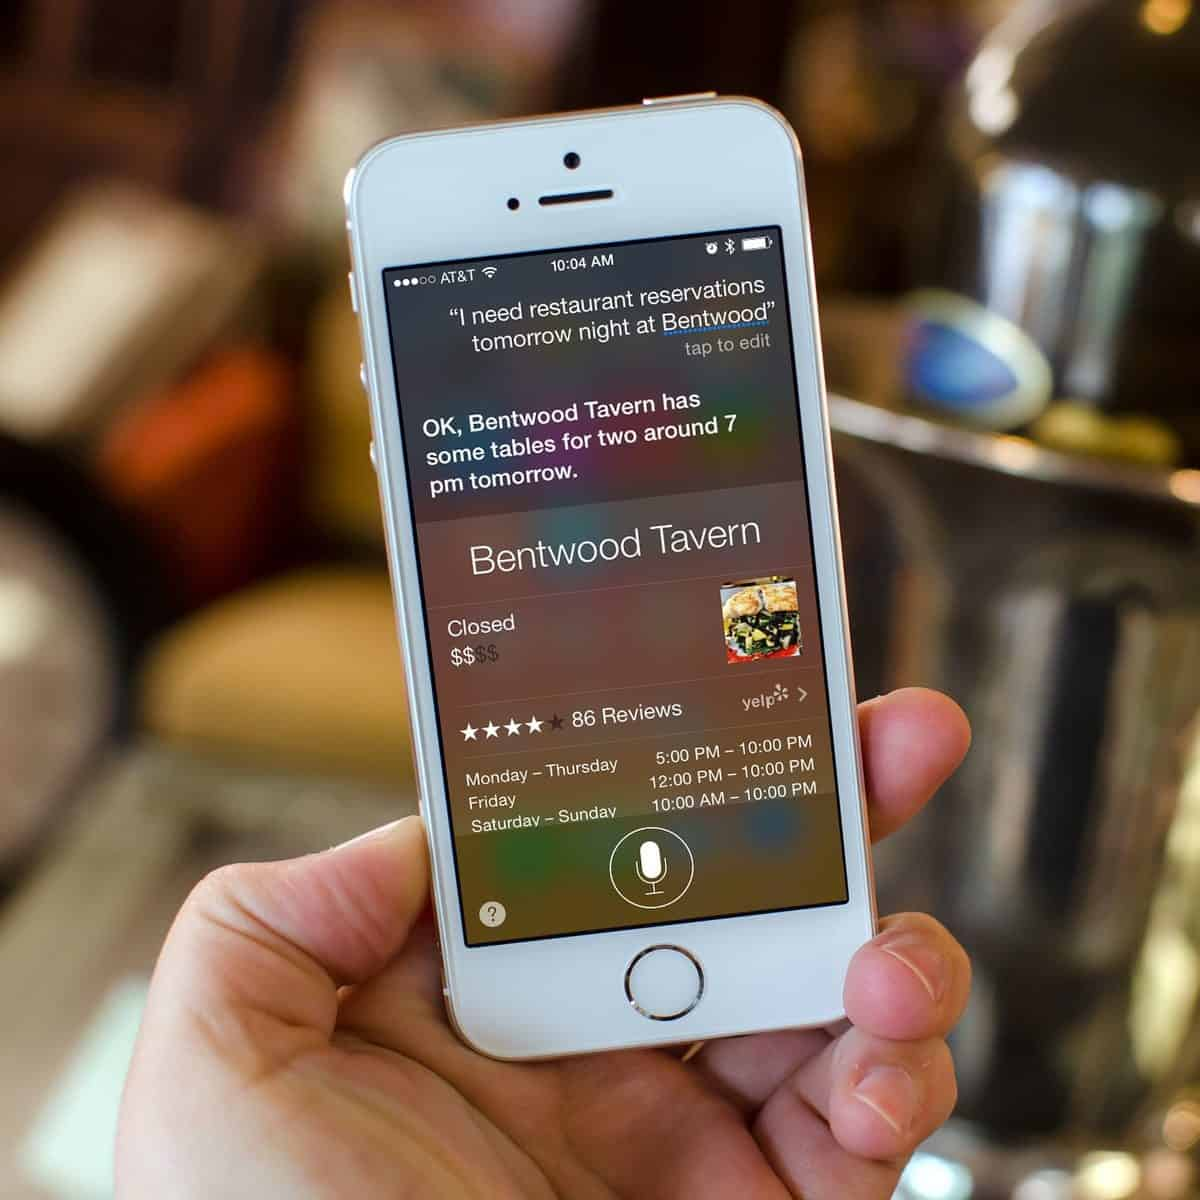 Making restaurant reservations with Siri